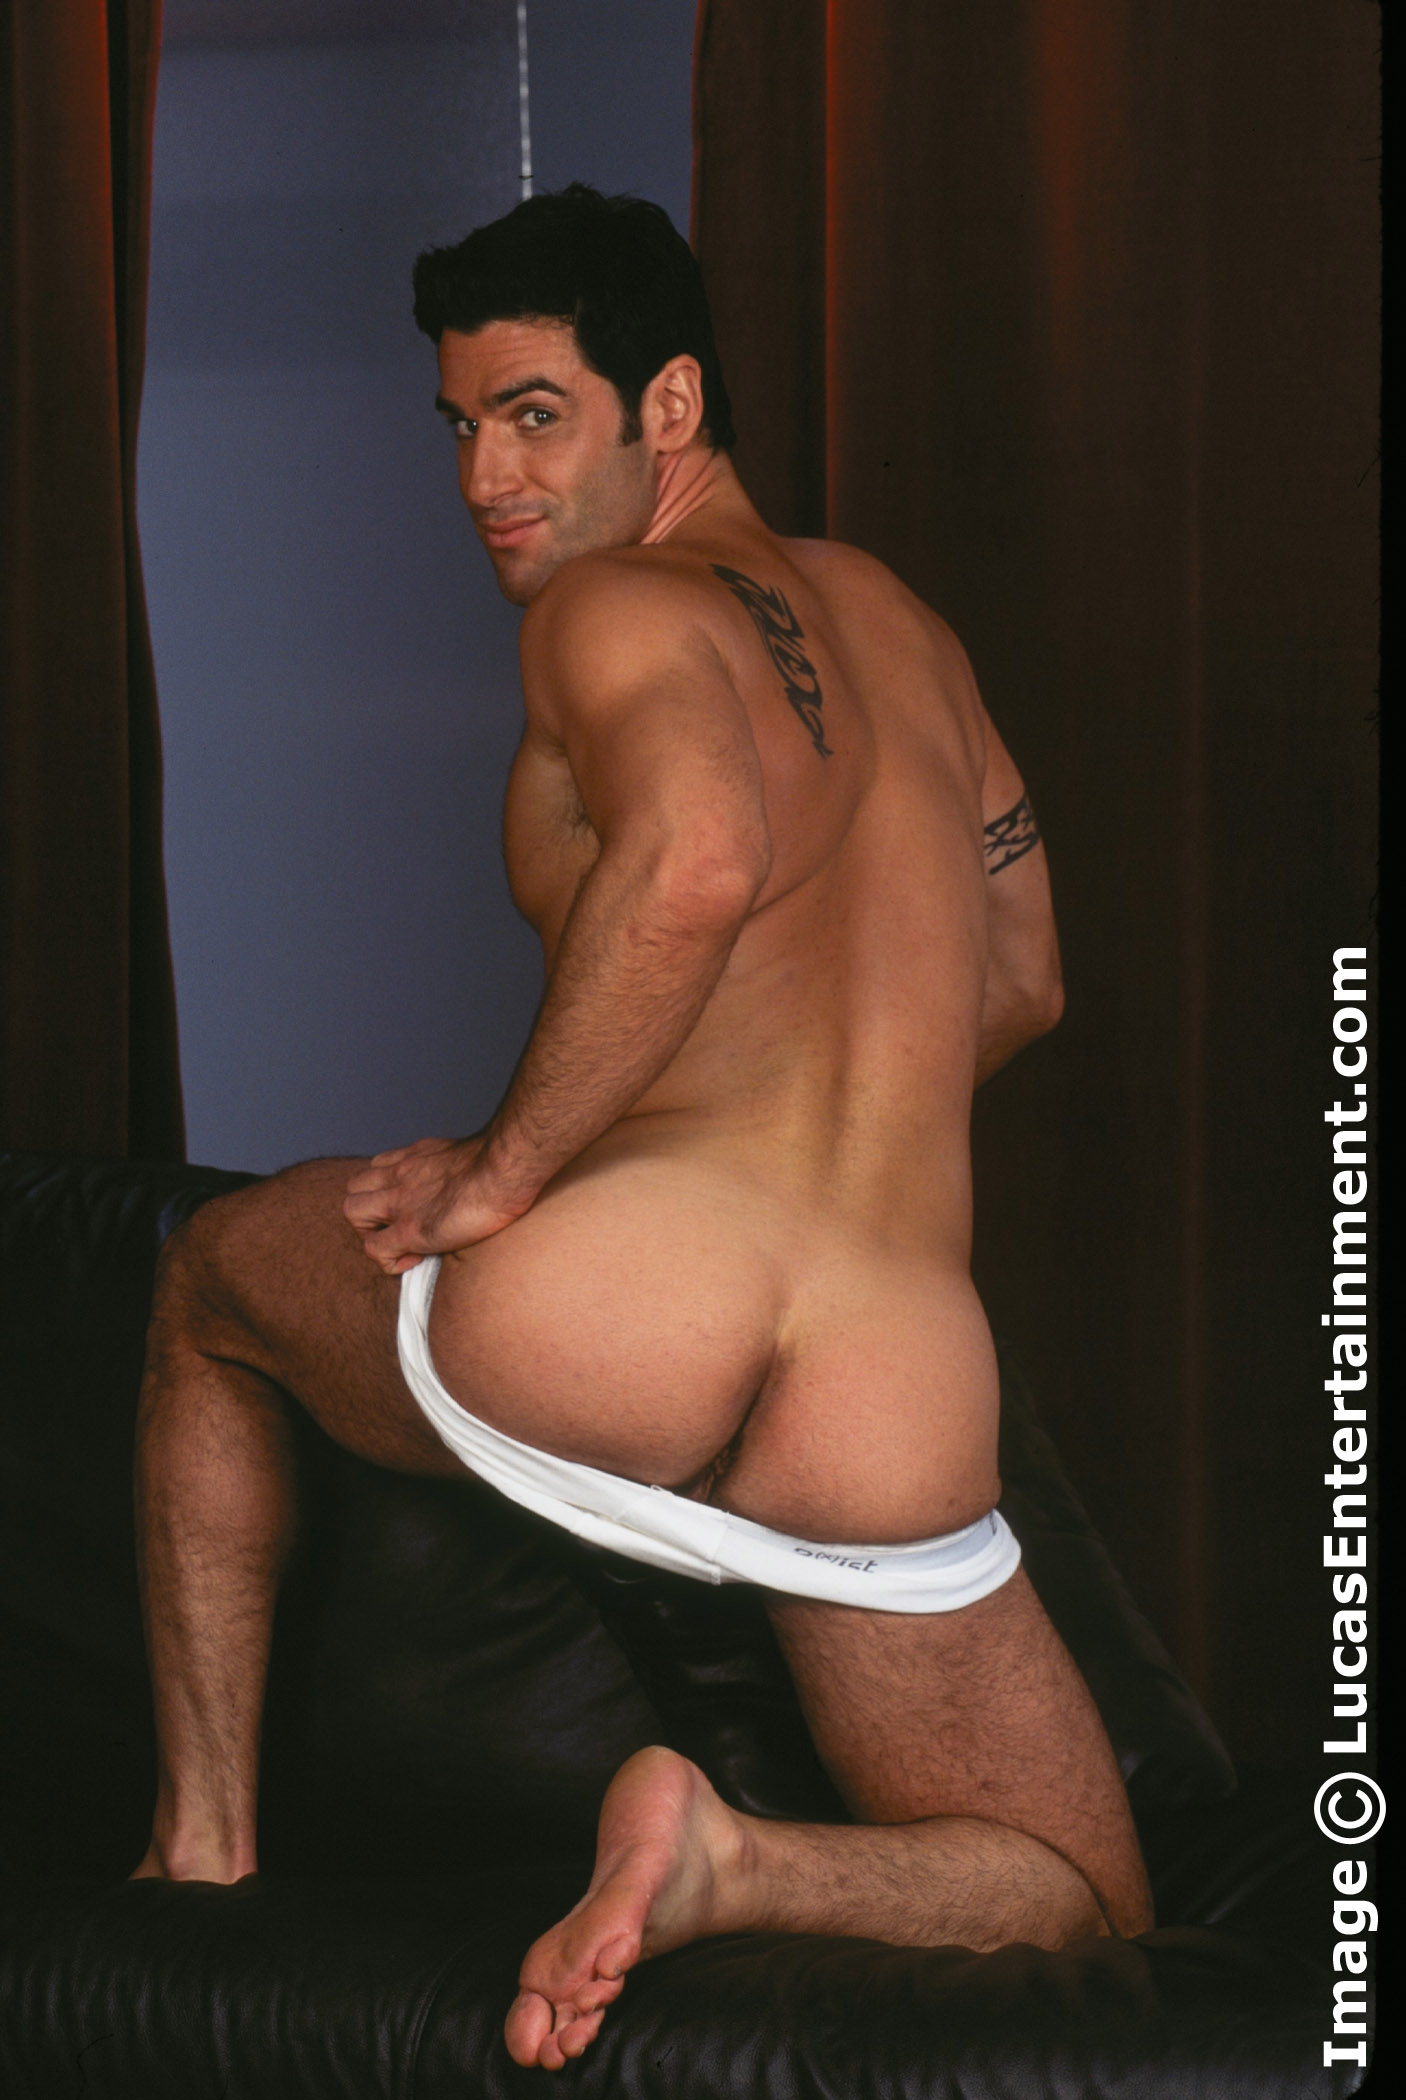 Richardblack04